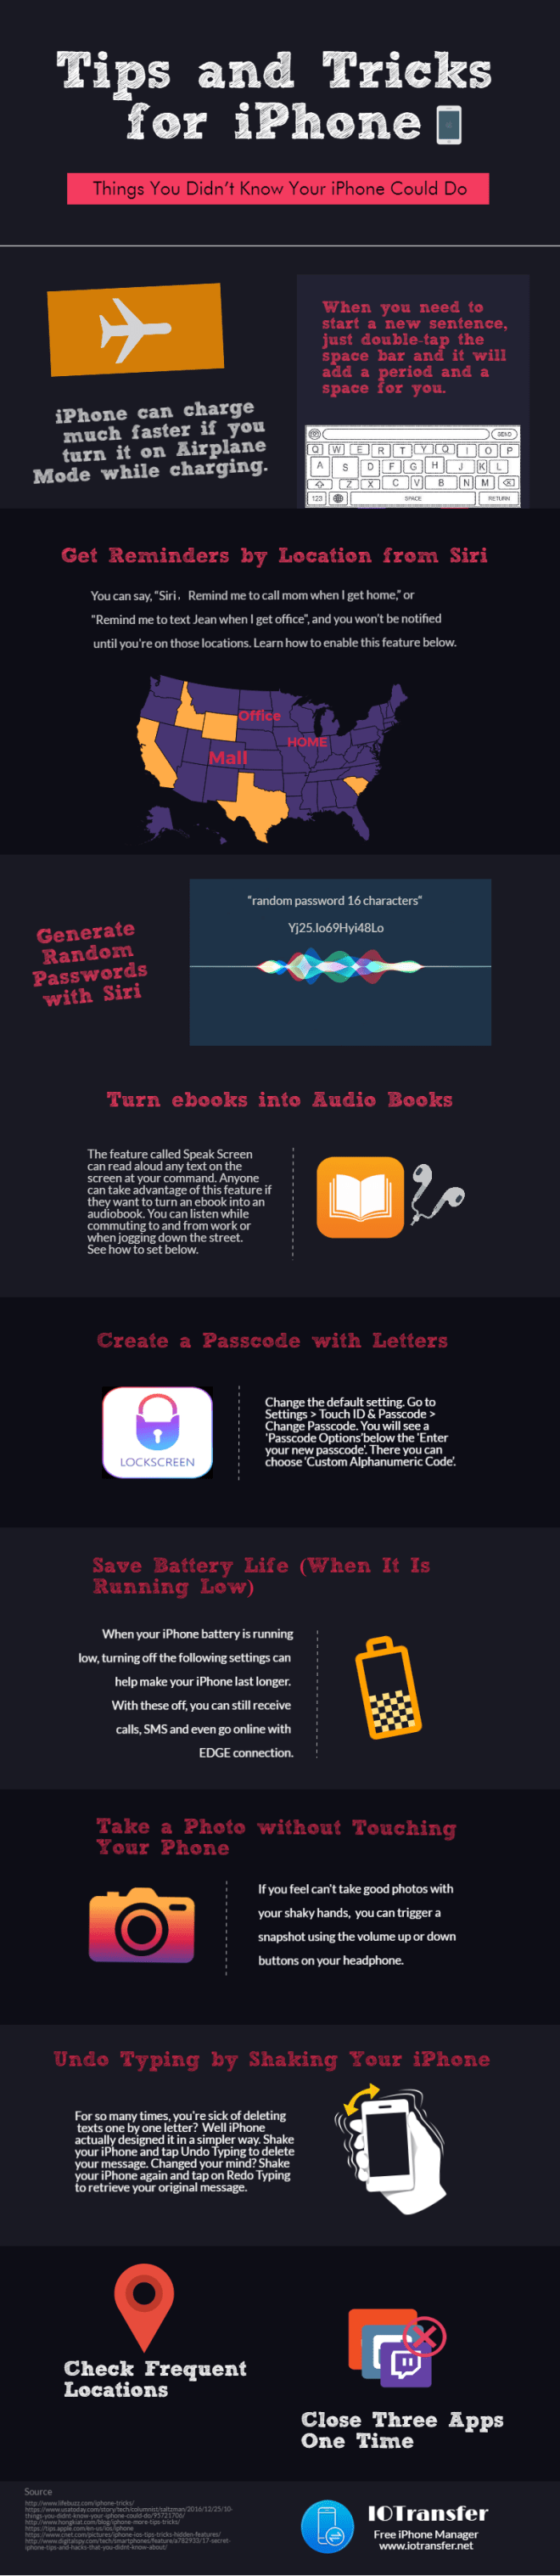 Tips and Tricks for iPhone - Infographic.png